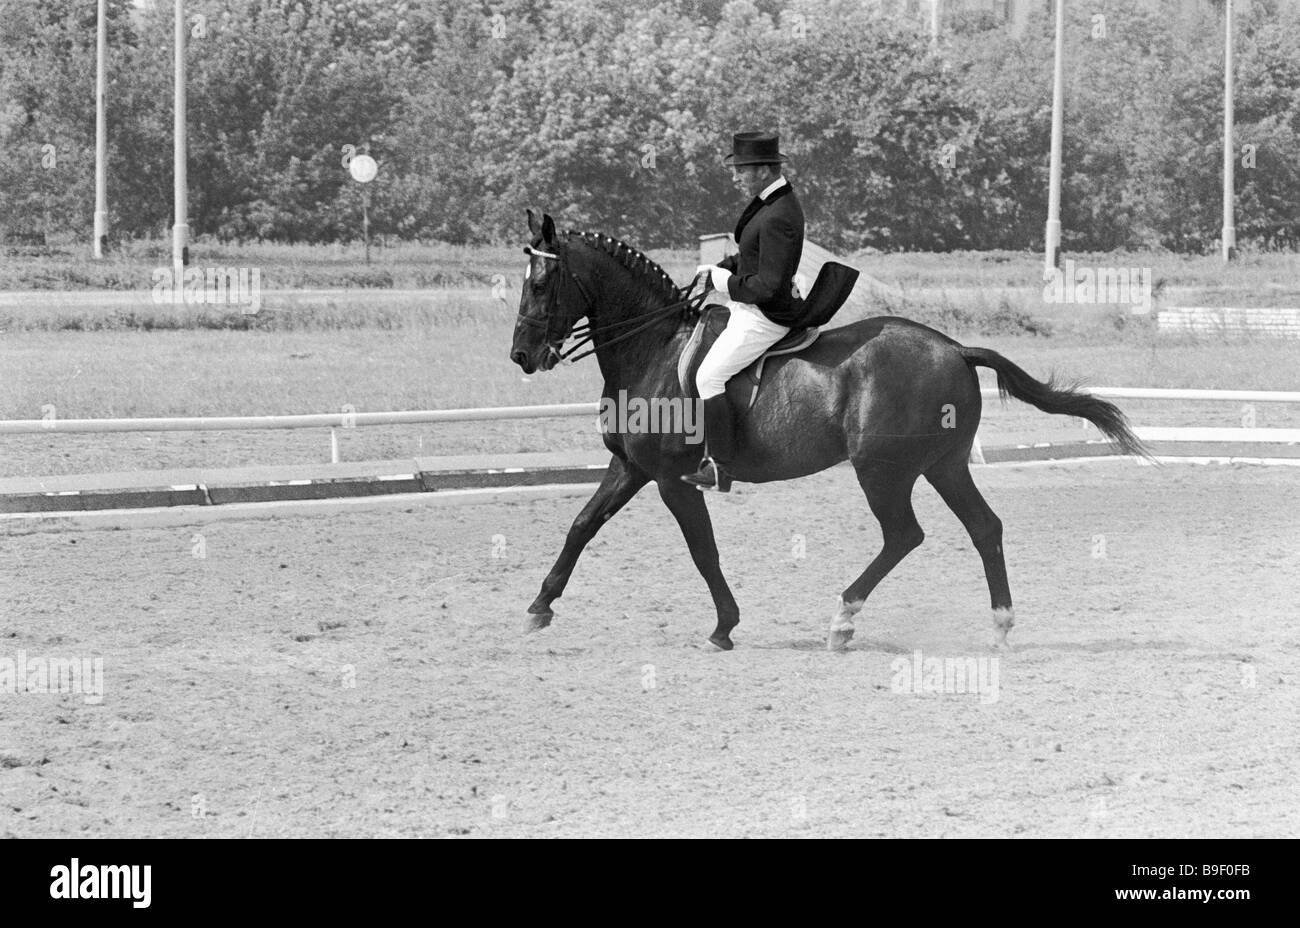 Ivan Kizimov member of the Olympic team riding the horse Ikhor by name - Stock Image